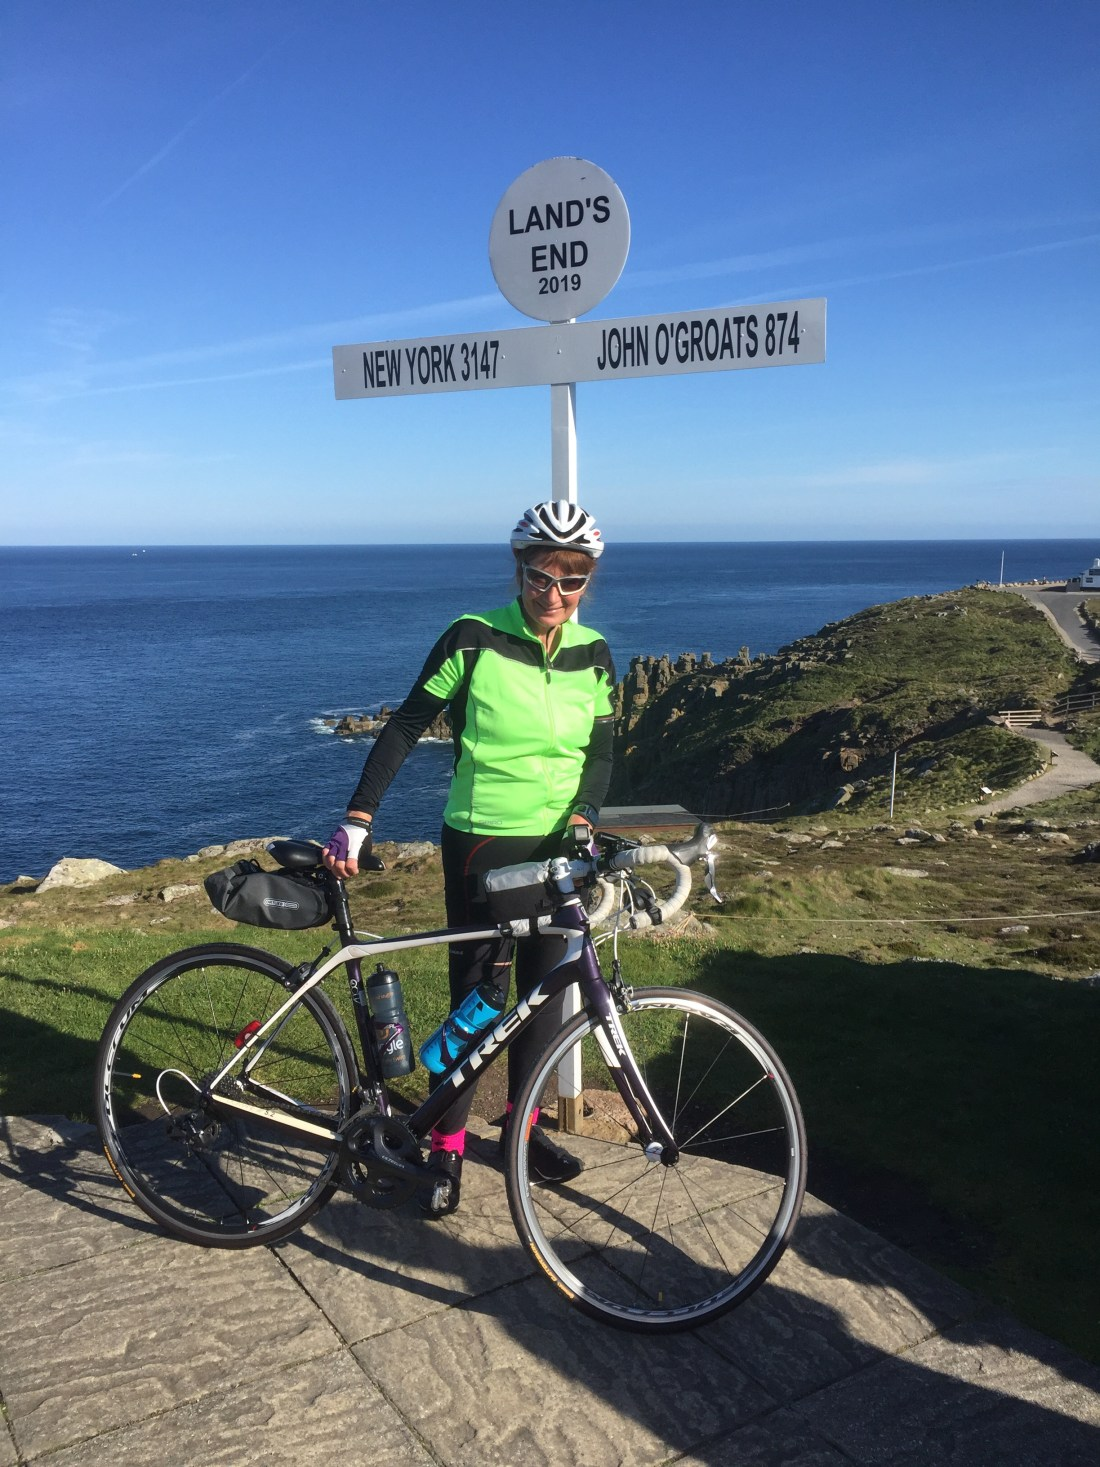 Jacky on her bike at Lands End on her way to John O'Groats